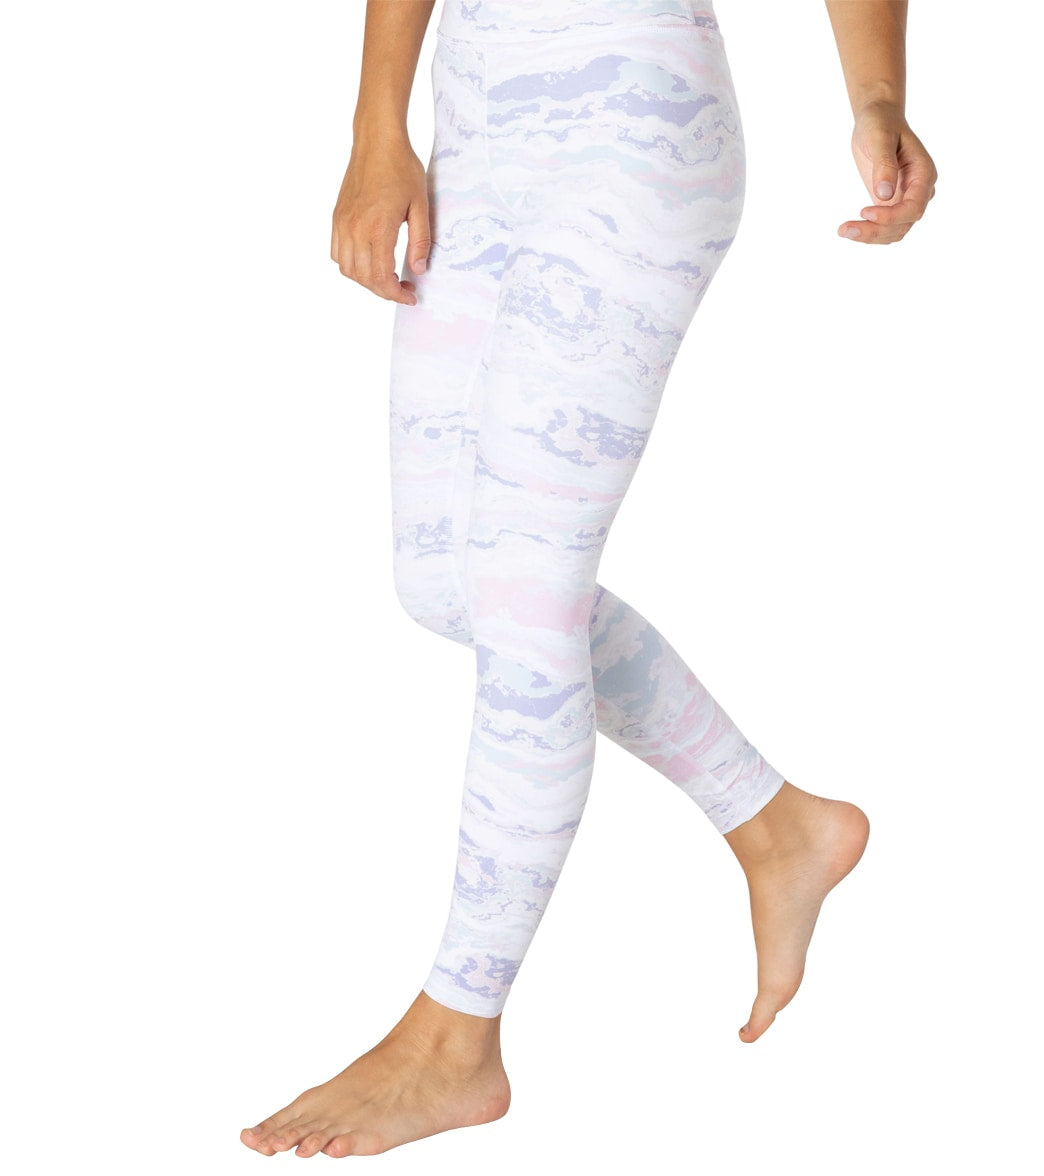 Upgrade your yoga wardrobe with the Beyond Yoga Olympus High Waisted 7/8 Yoga Leggings. With quick-drying and moisture-wicking fabric properties to keep you cool and comfortable as you sweat, these midi yoga leggings feature a stunning marble print that will set you apart from the rest. Features 5. 25\\\